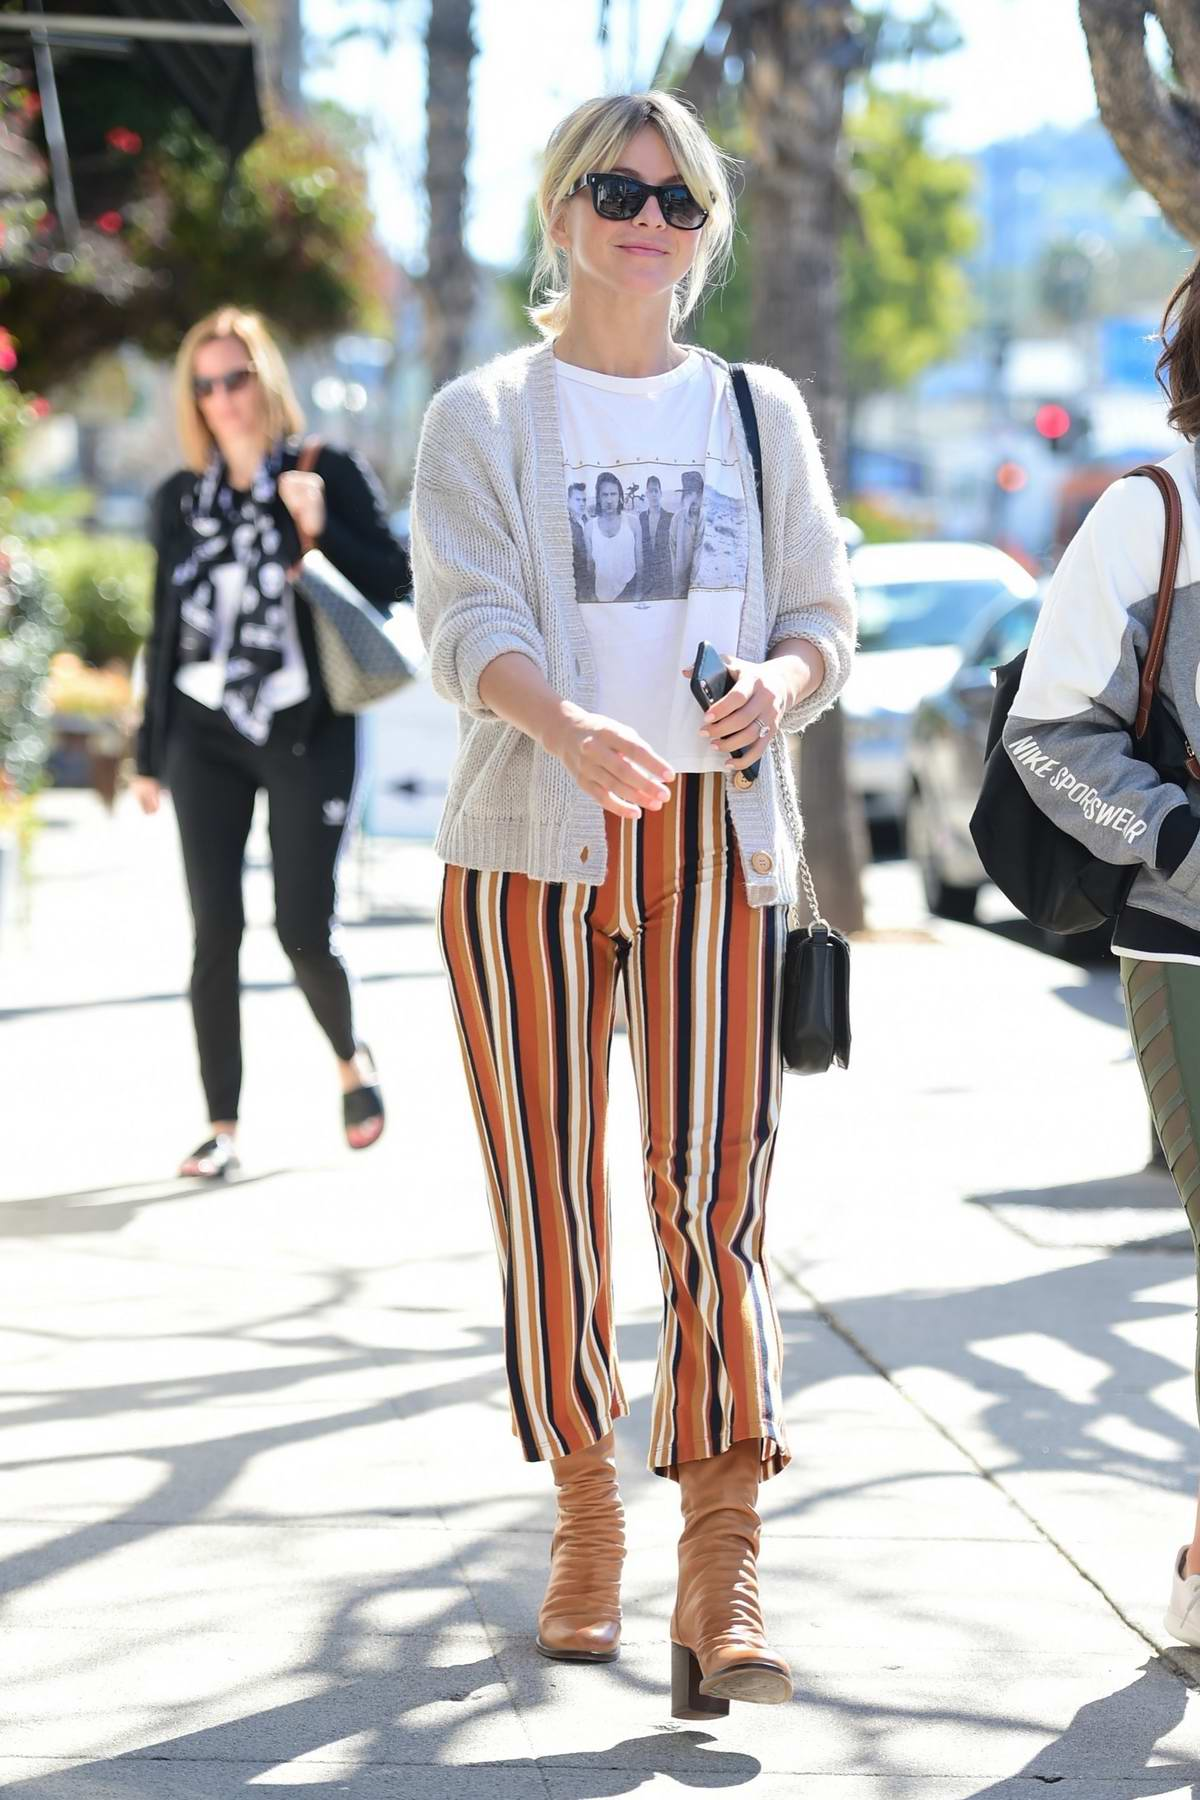 Julianne Hough rocks a casual but trendy look while out at Joan's On Third in Studio City, Los Angeles